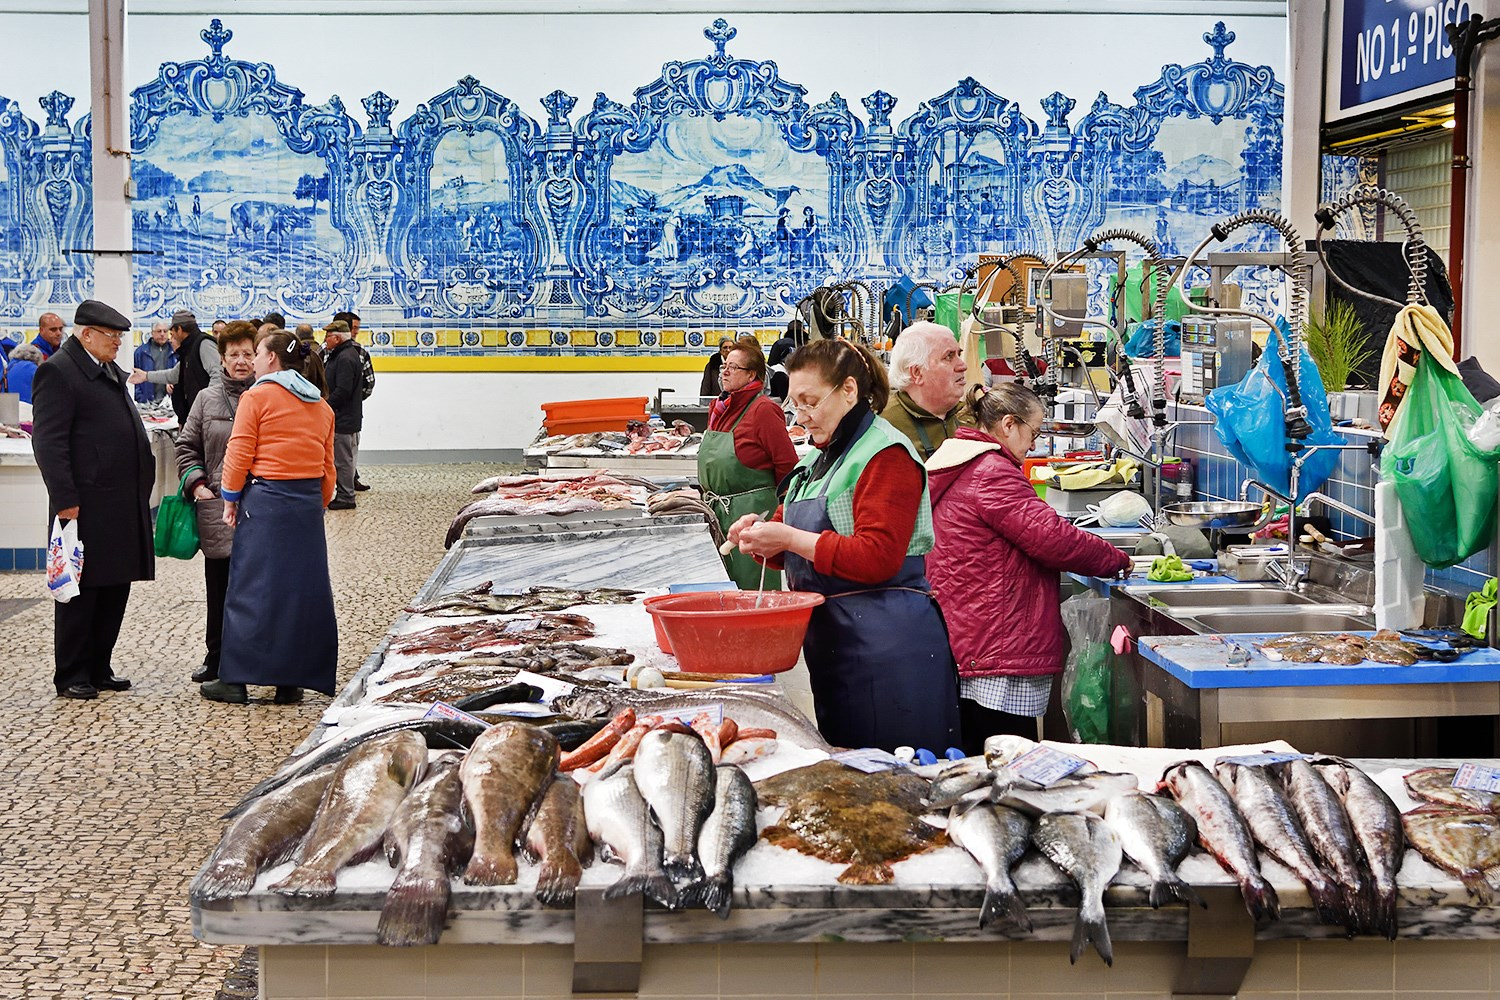 FishMonger in Portugal